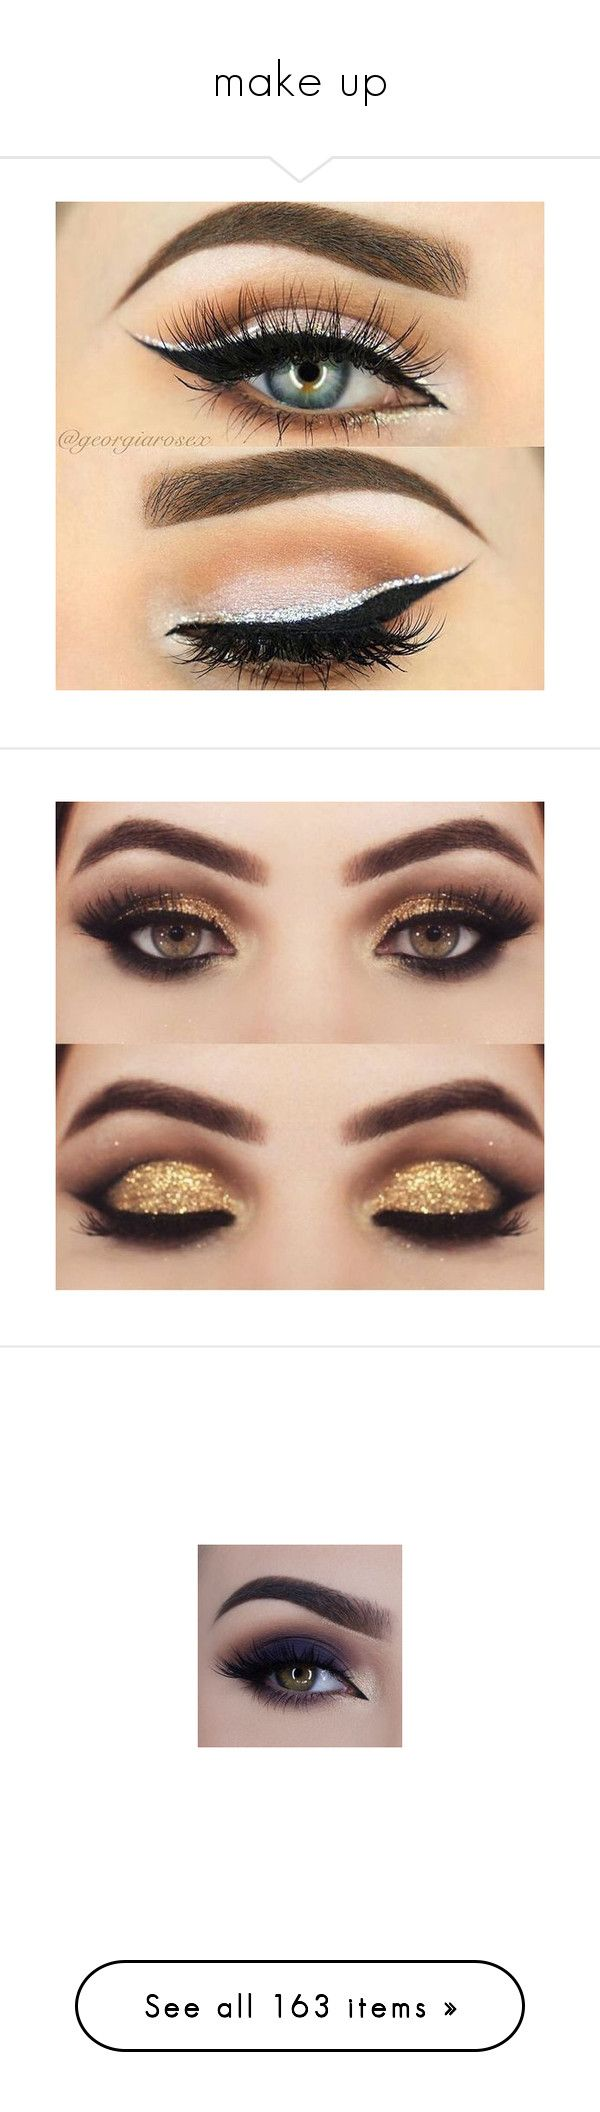 """make up"" by sassysuzyq ❤ liked on Polyvore featuring beauty products, makeup, eye makeup, eyeliner, eyeshadow, eyes, beauty, maquiagem, eye look and orca"